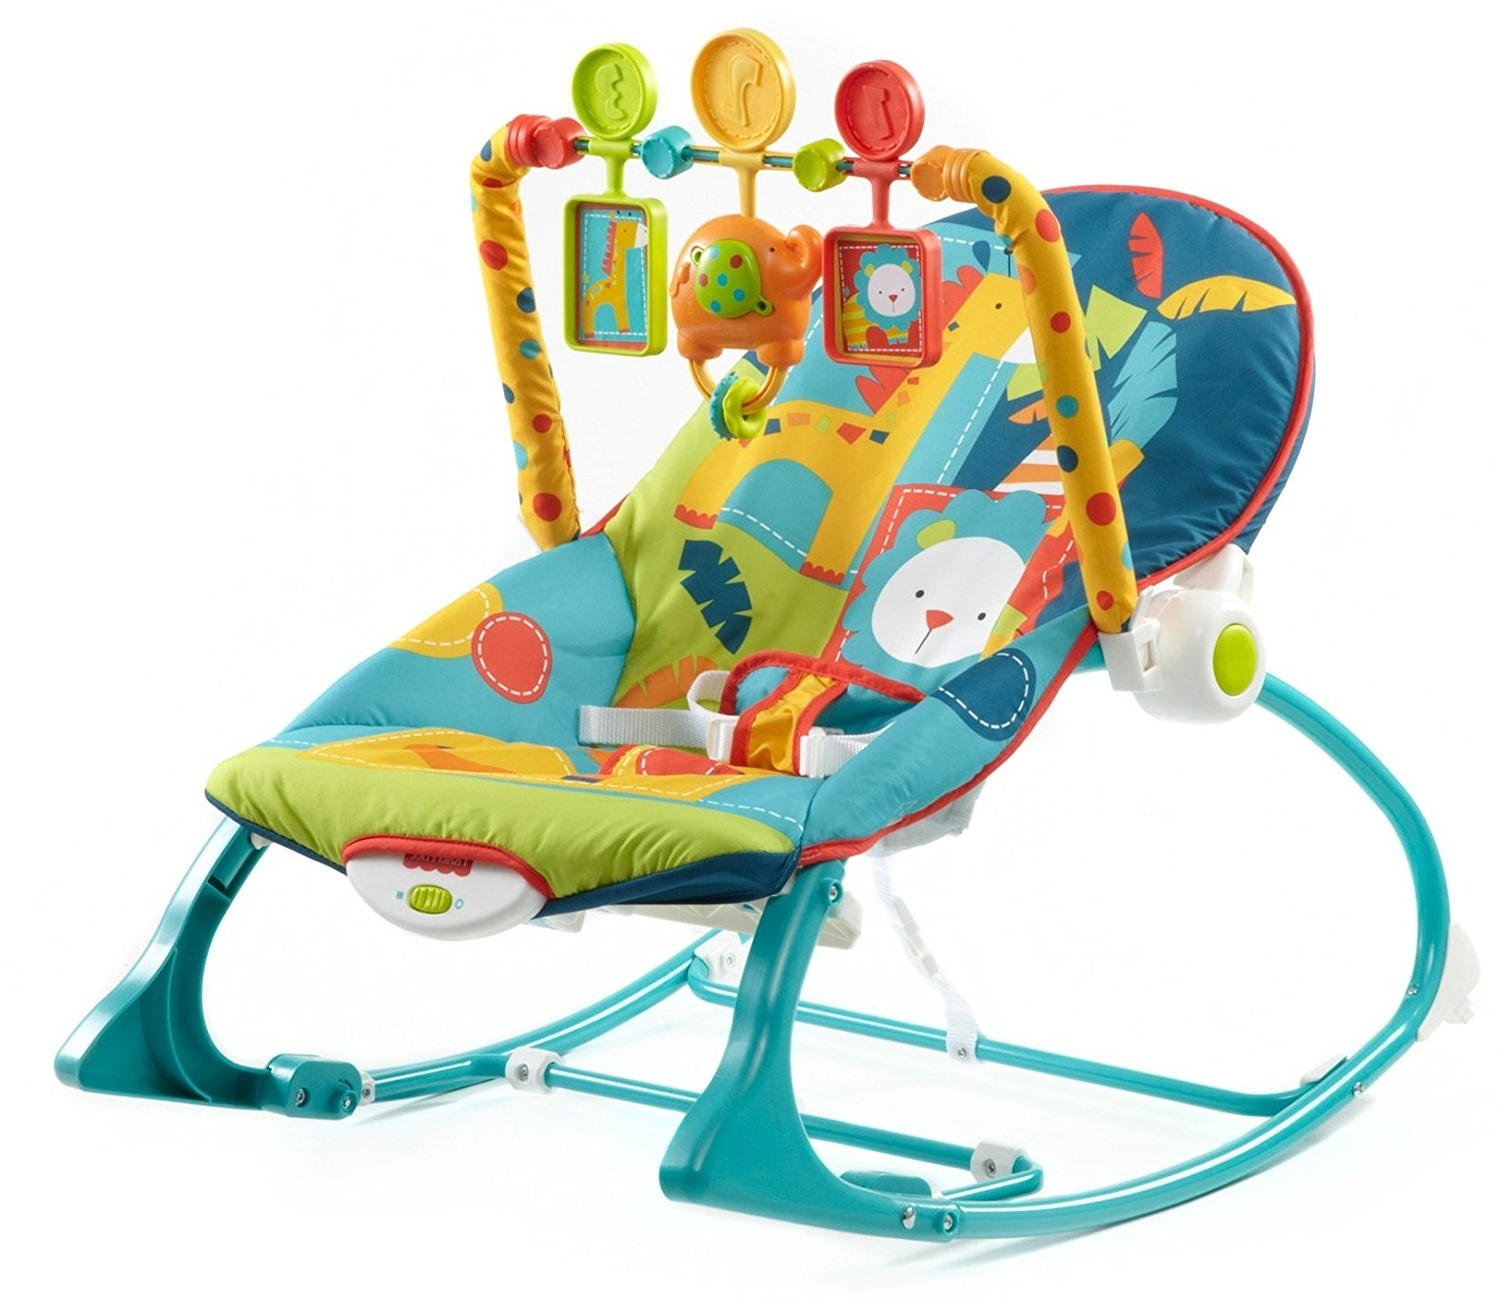 Fashionable Benefits Of Baby Rocking Chair – Bellissimainteriors Pertaining To Rocking Chairs For Babies (View 10 of 15)